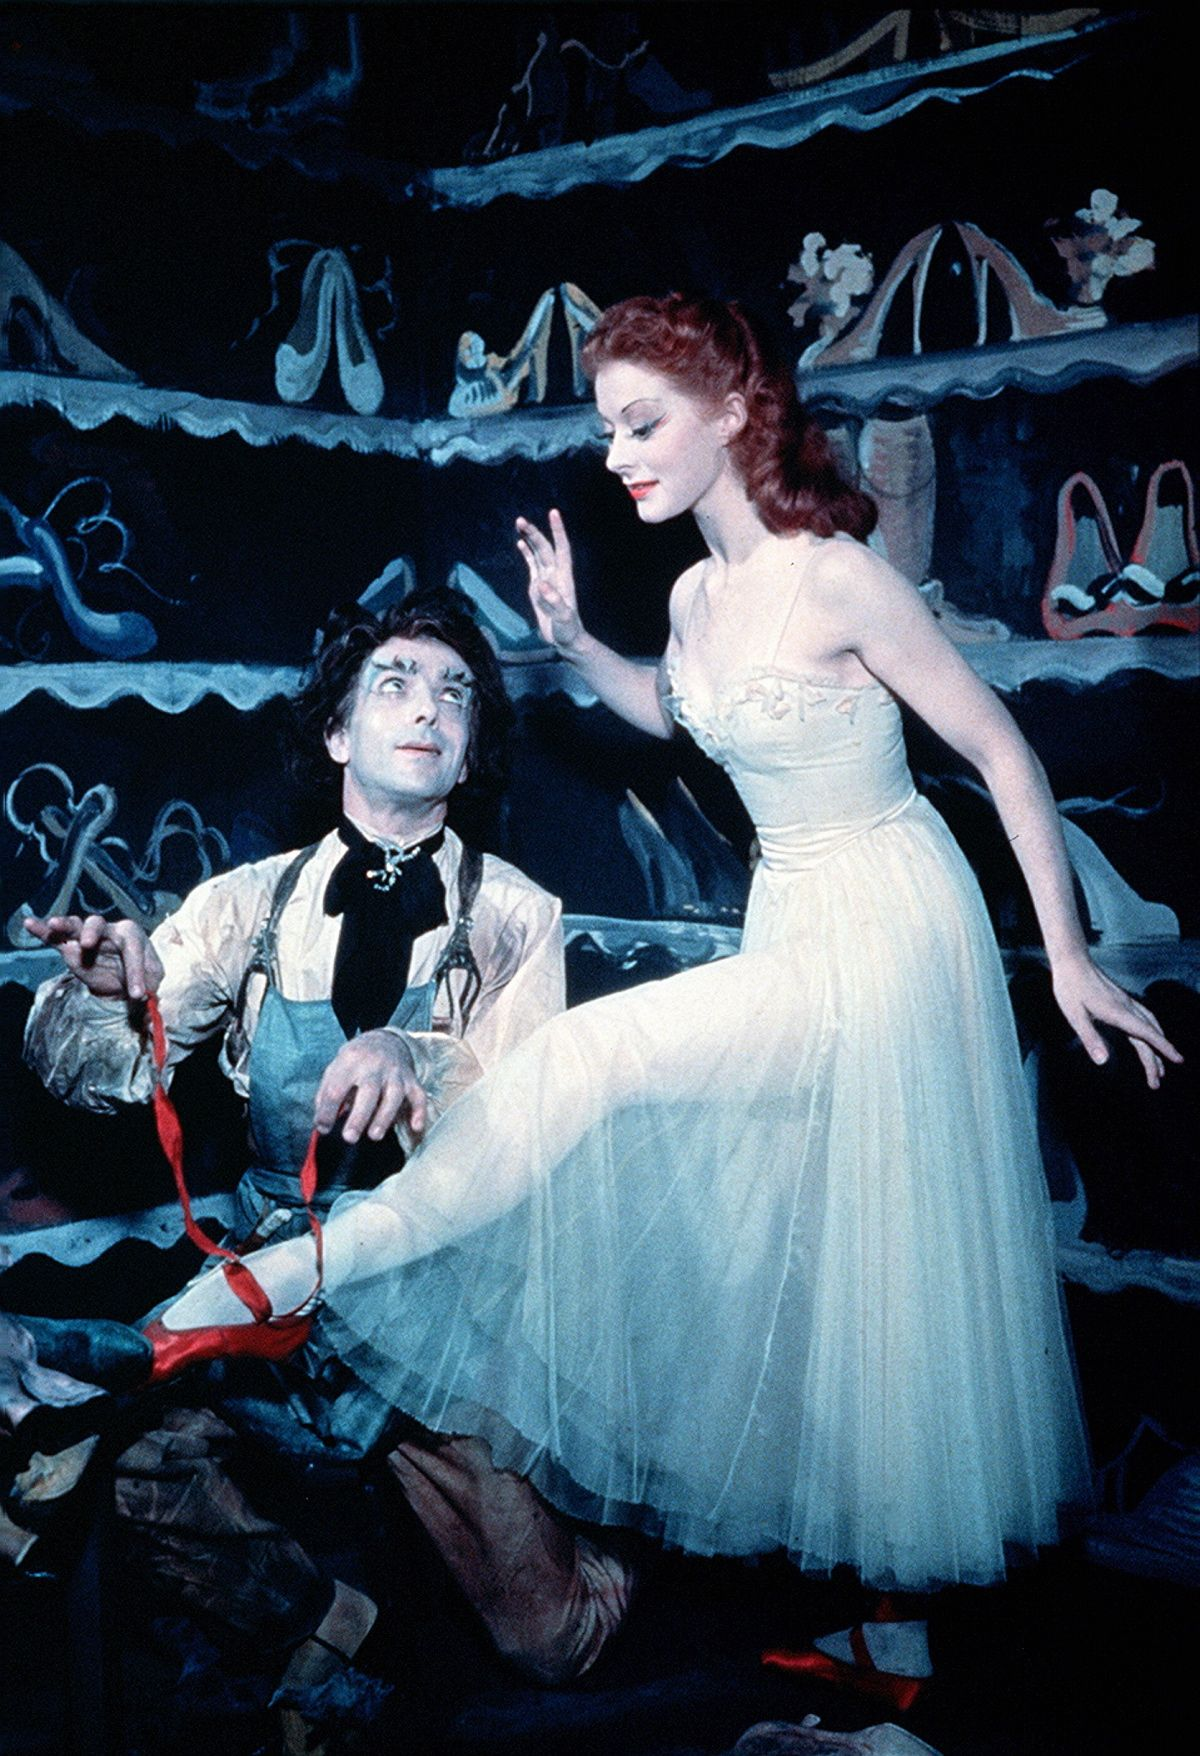 U) The Red Shoes Restoration, Truffaut's Small Change & more ...